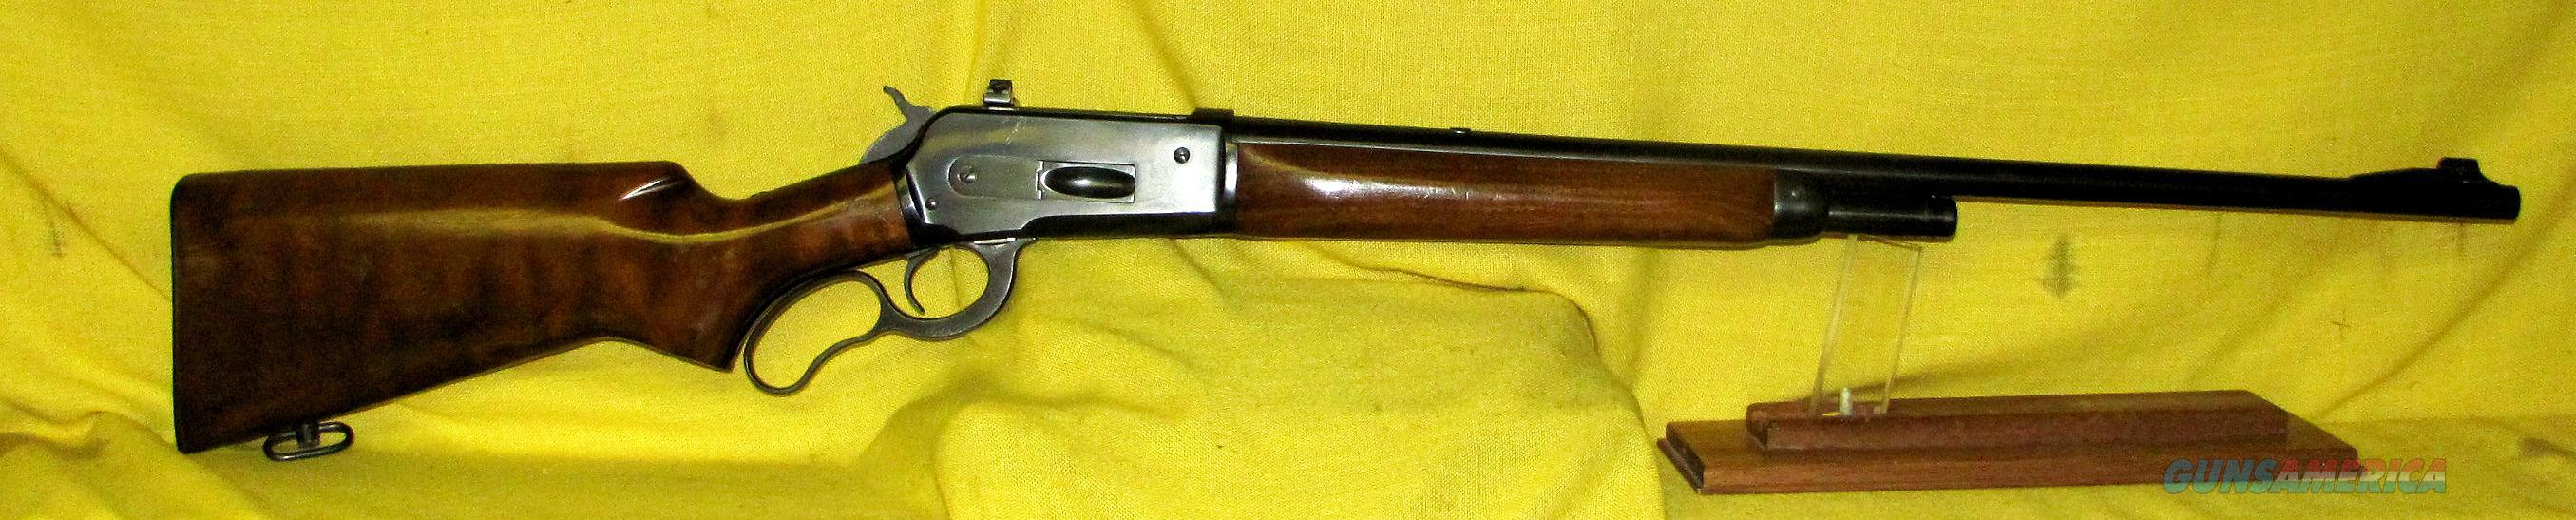 WINCHESTER 71  Guns > Rifles > Winchester Rifles - Modern Lever > Other Lever > Pre-64